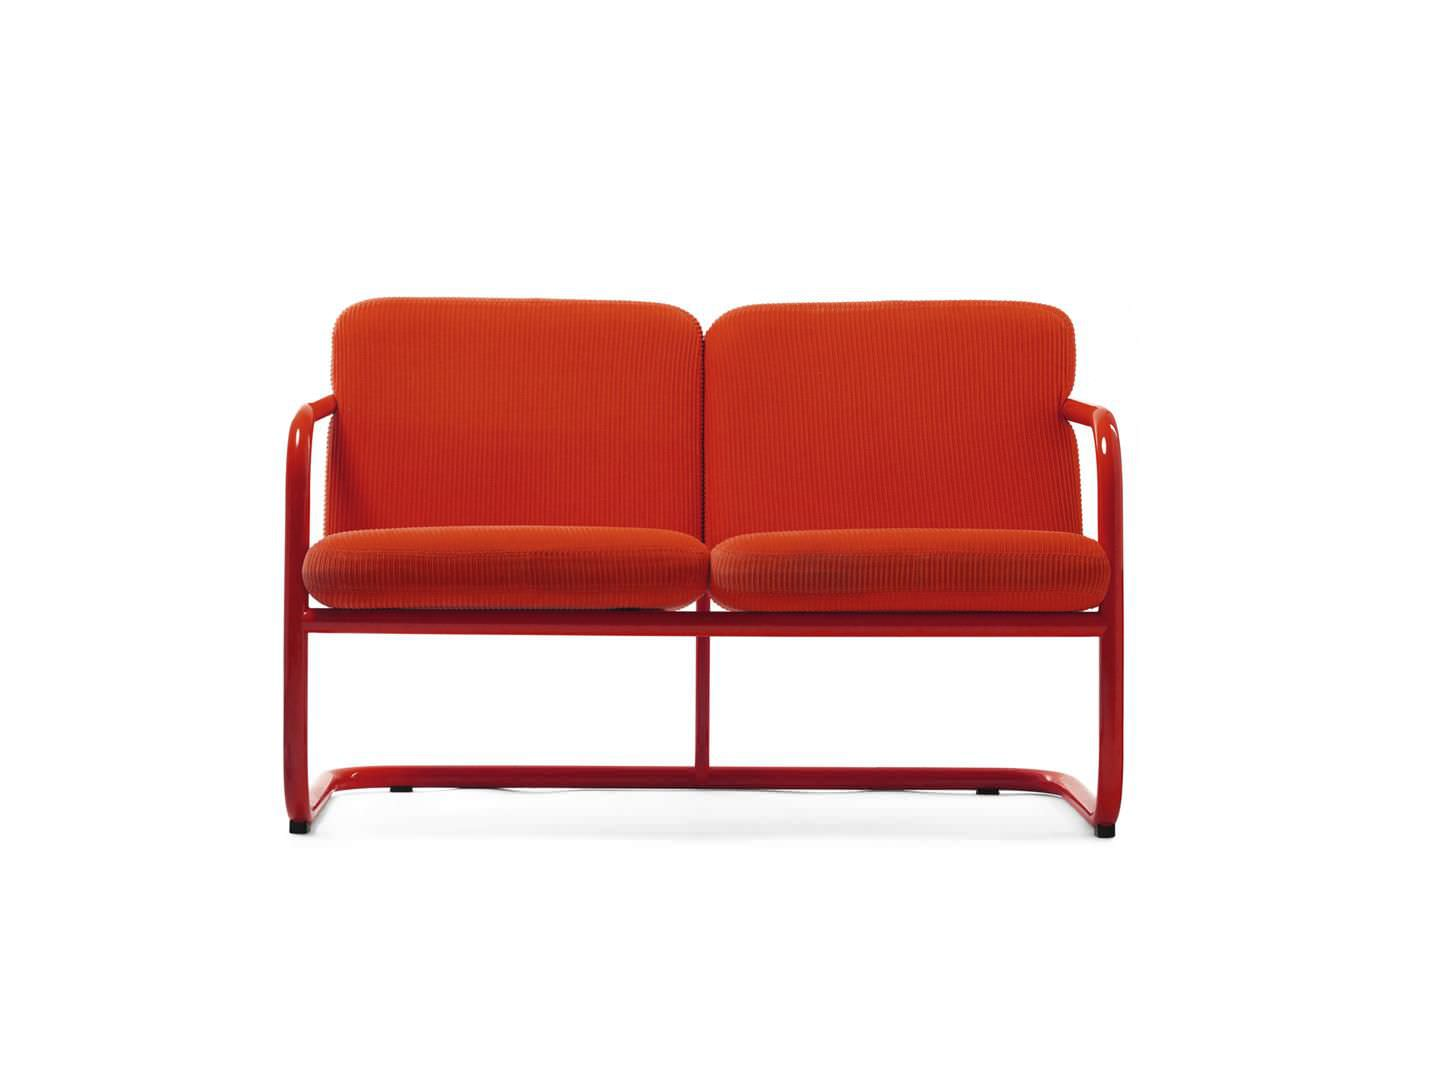 Möbel Lindau contemporary upholstered bench fabric leather steel s70 5 by